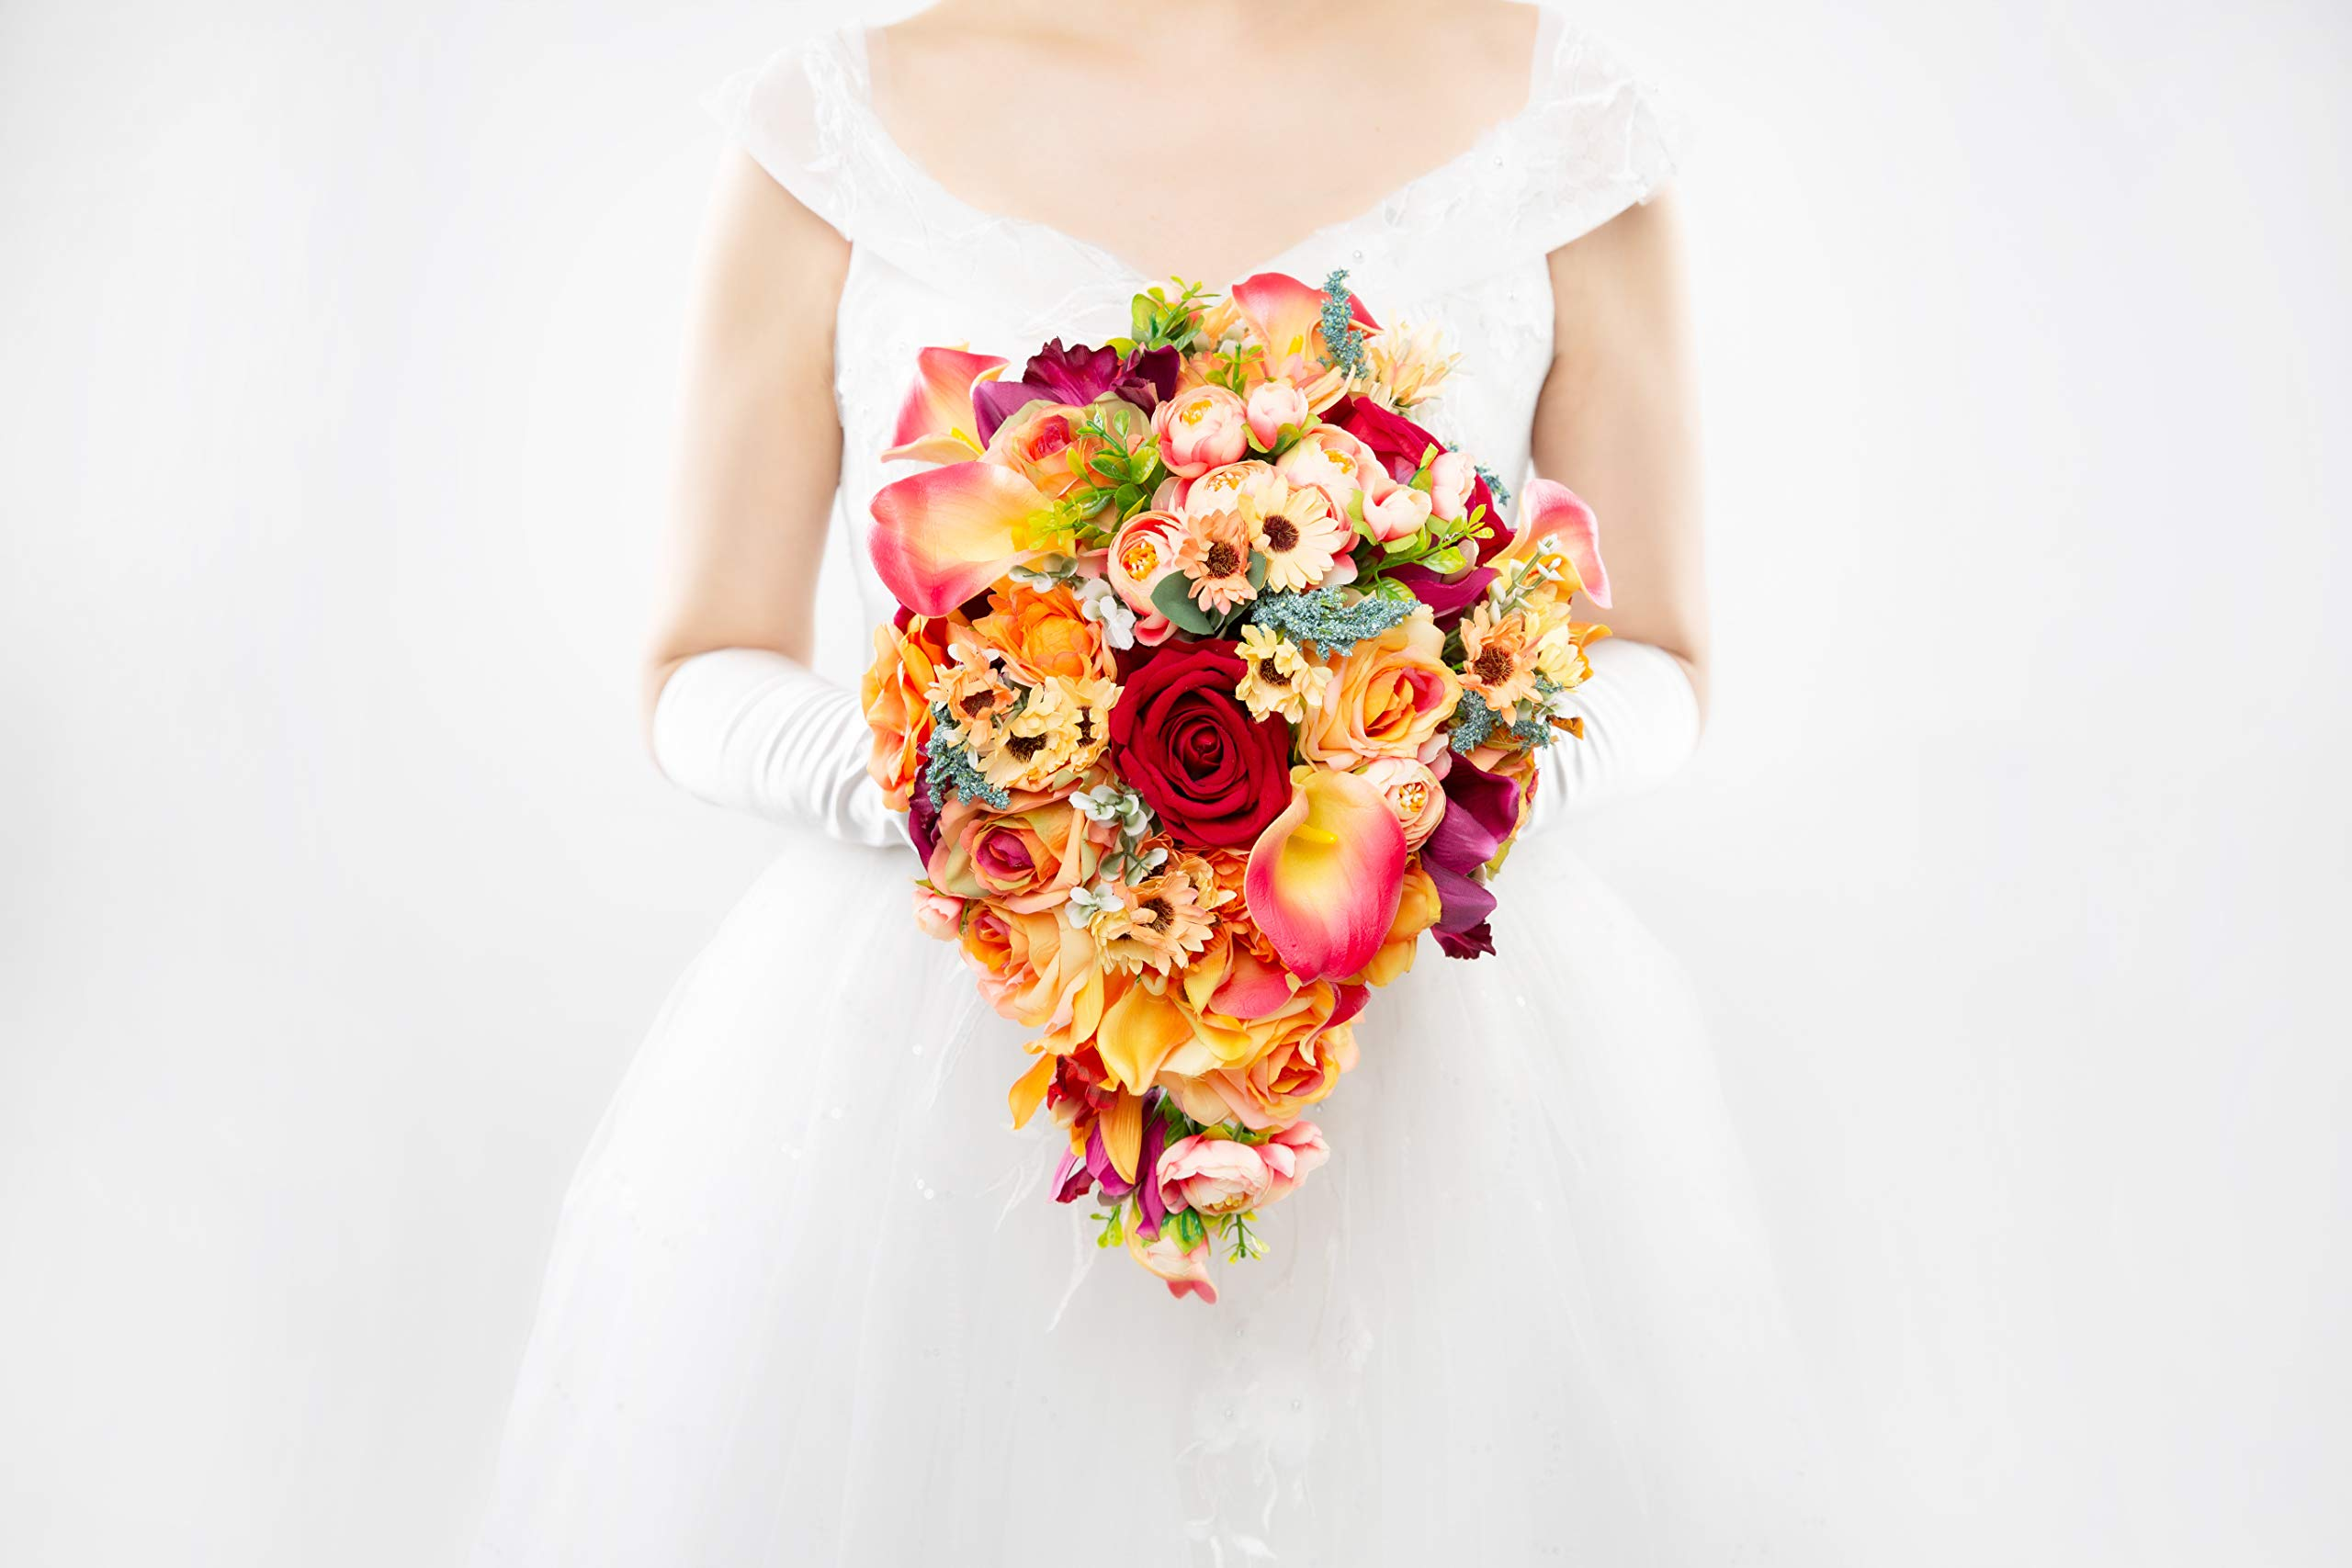 Abbie Home Cascading Bridal Bouquet - Red Rose Champagne Orange Gradient Calla Lily Bride Flowers for Garden Wedding (A Cascading Bouquet) by Abbie Home